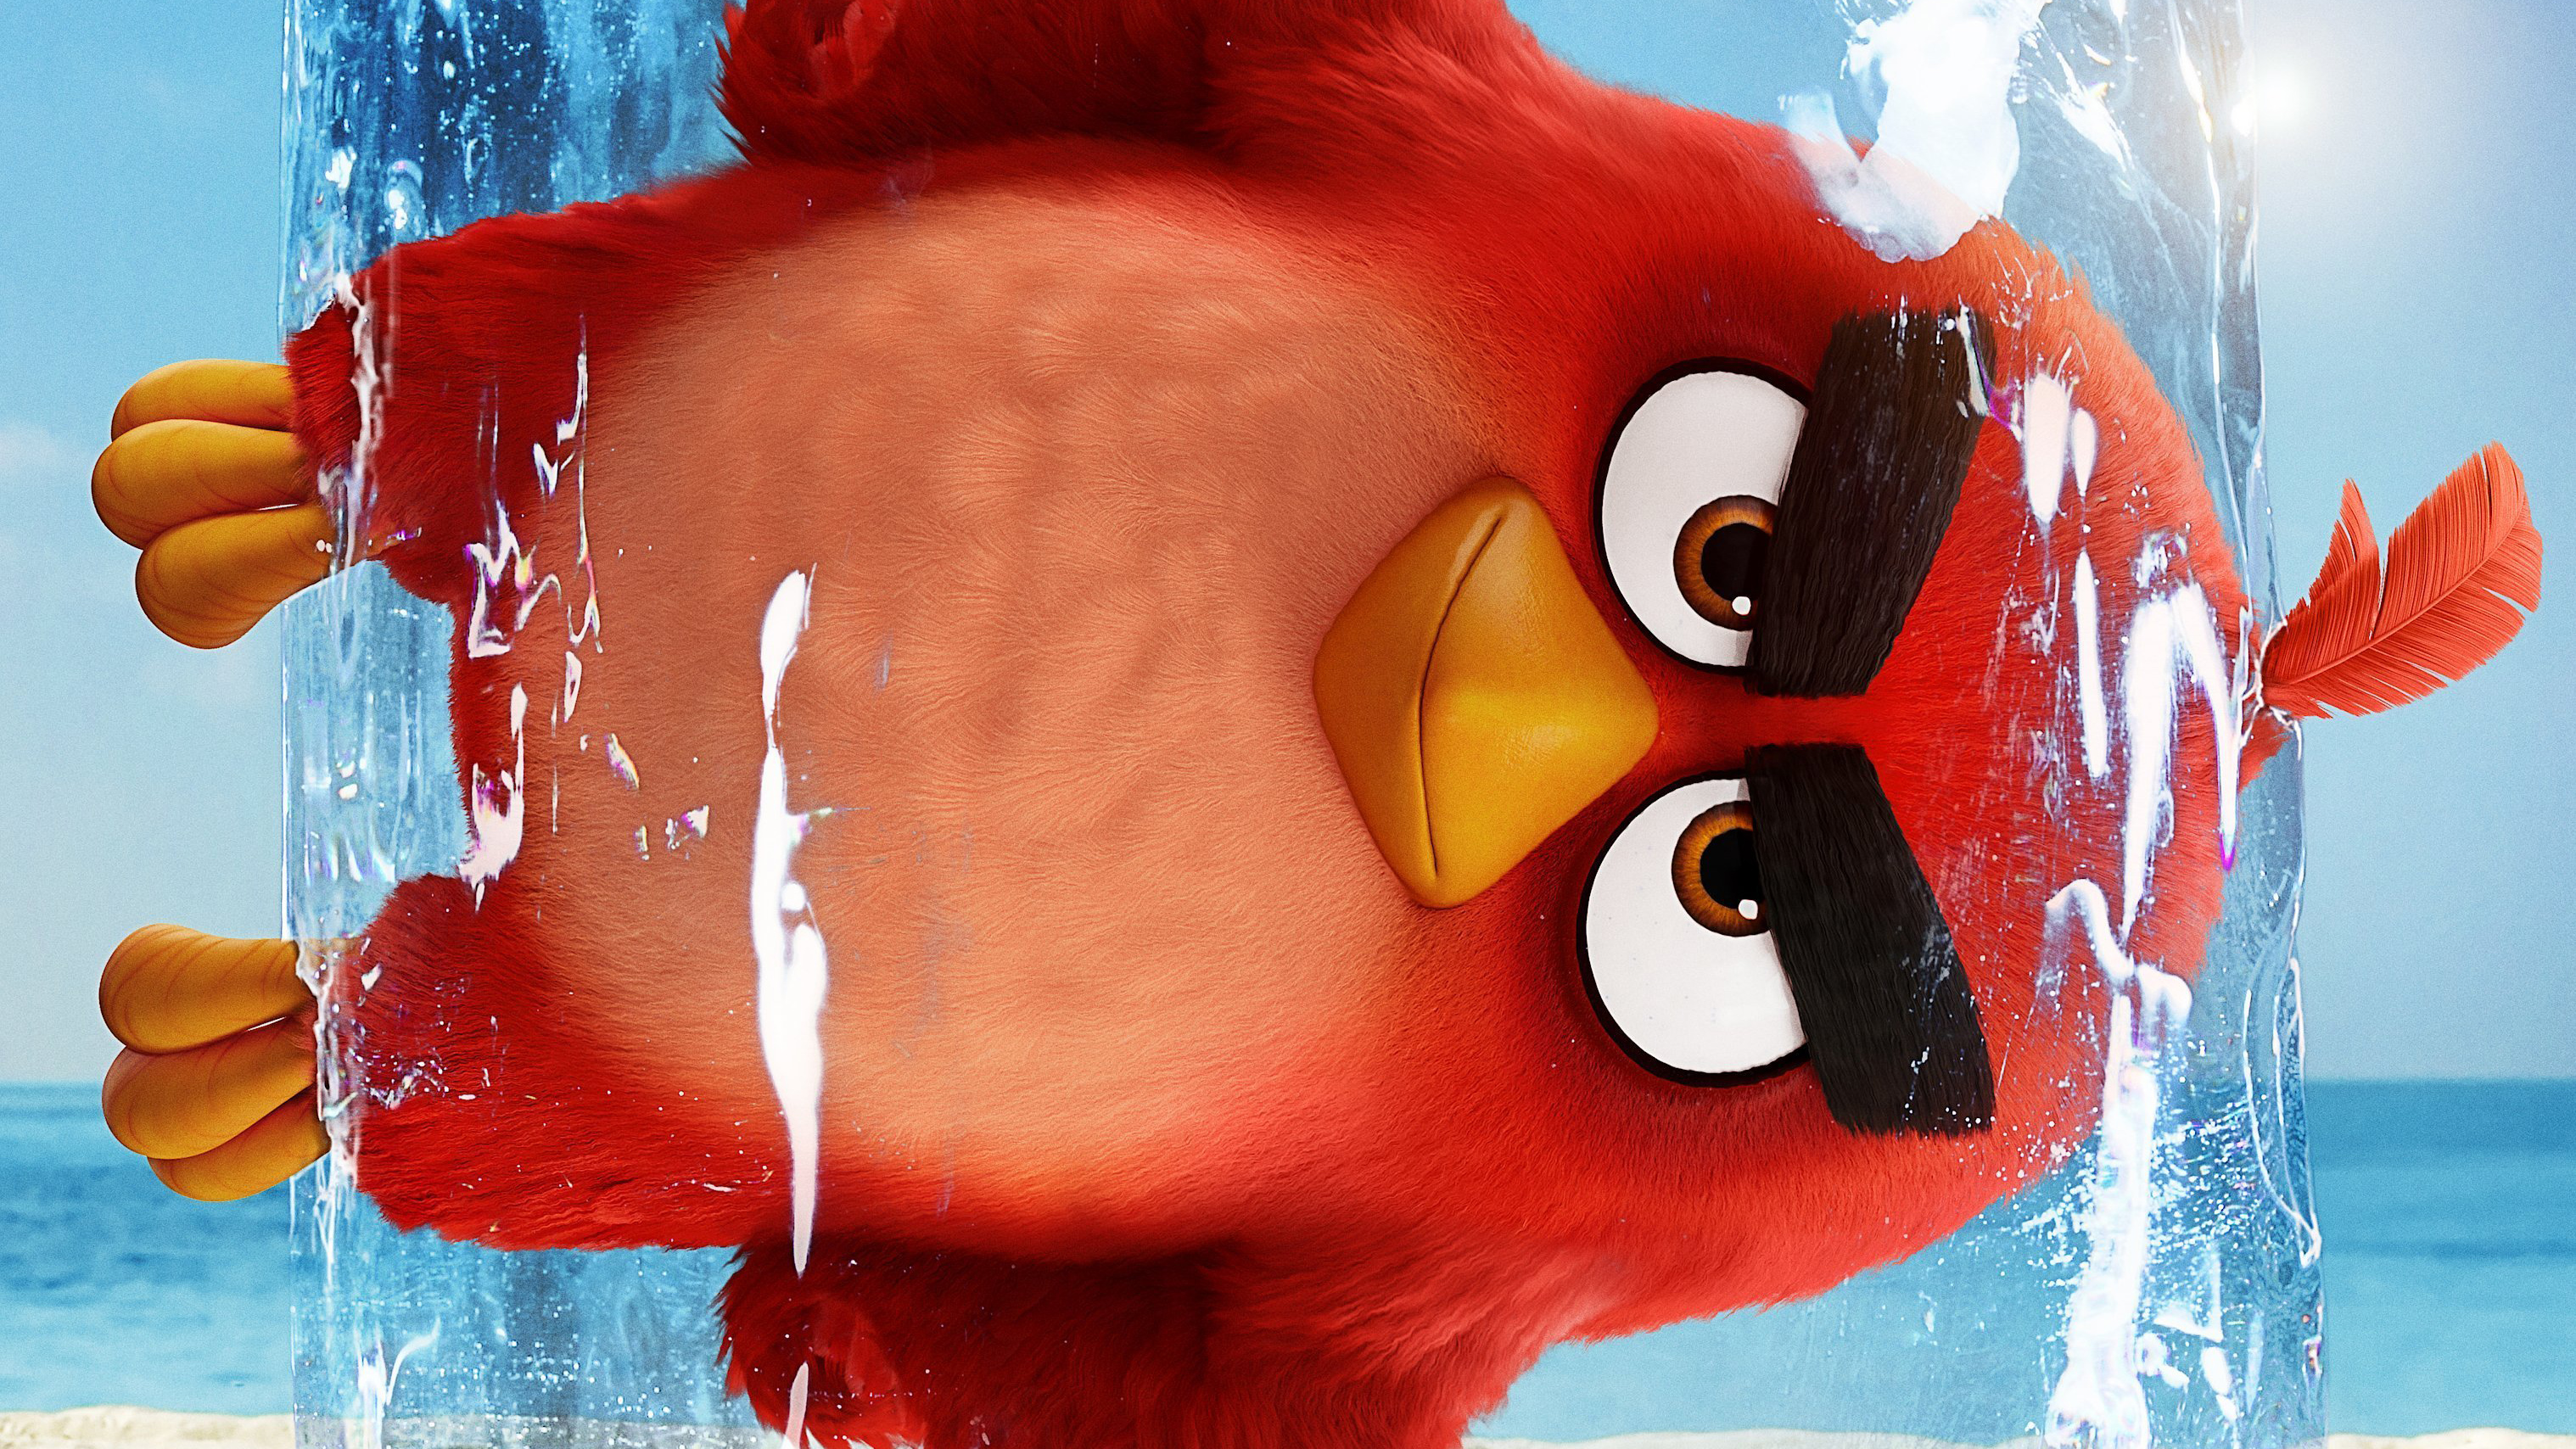 Movie Poster 2019: The Angry Birds Movie 2 2019, HD Movies, 4k Wallpapers